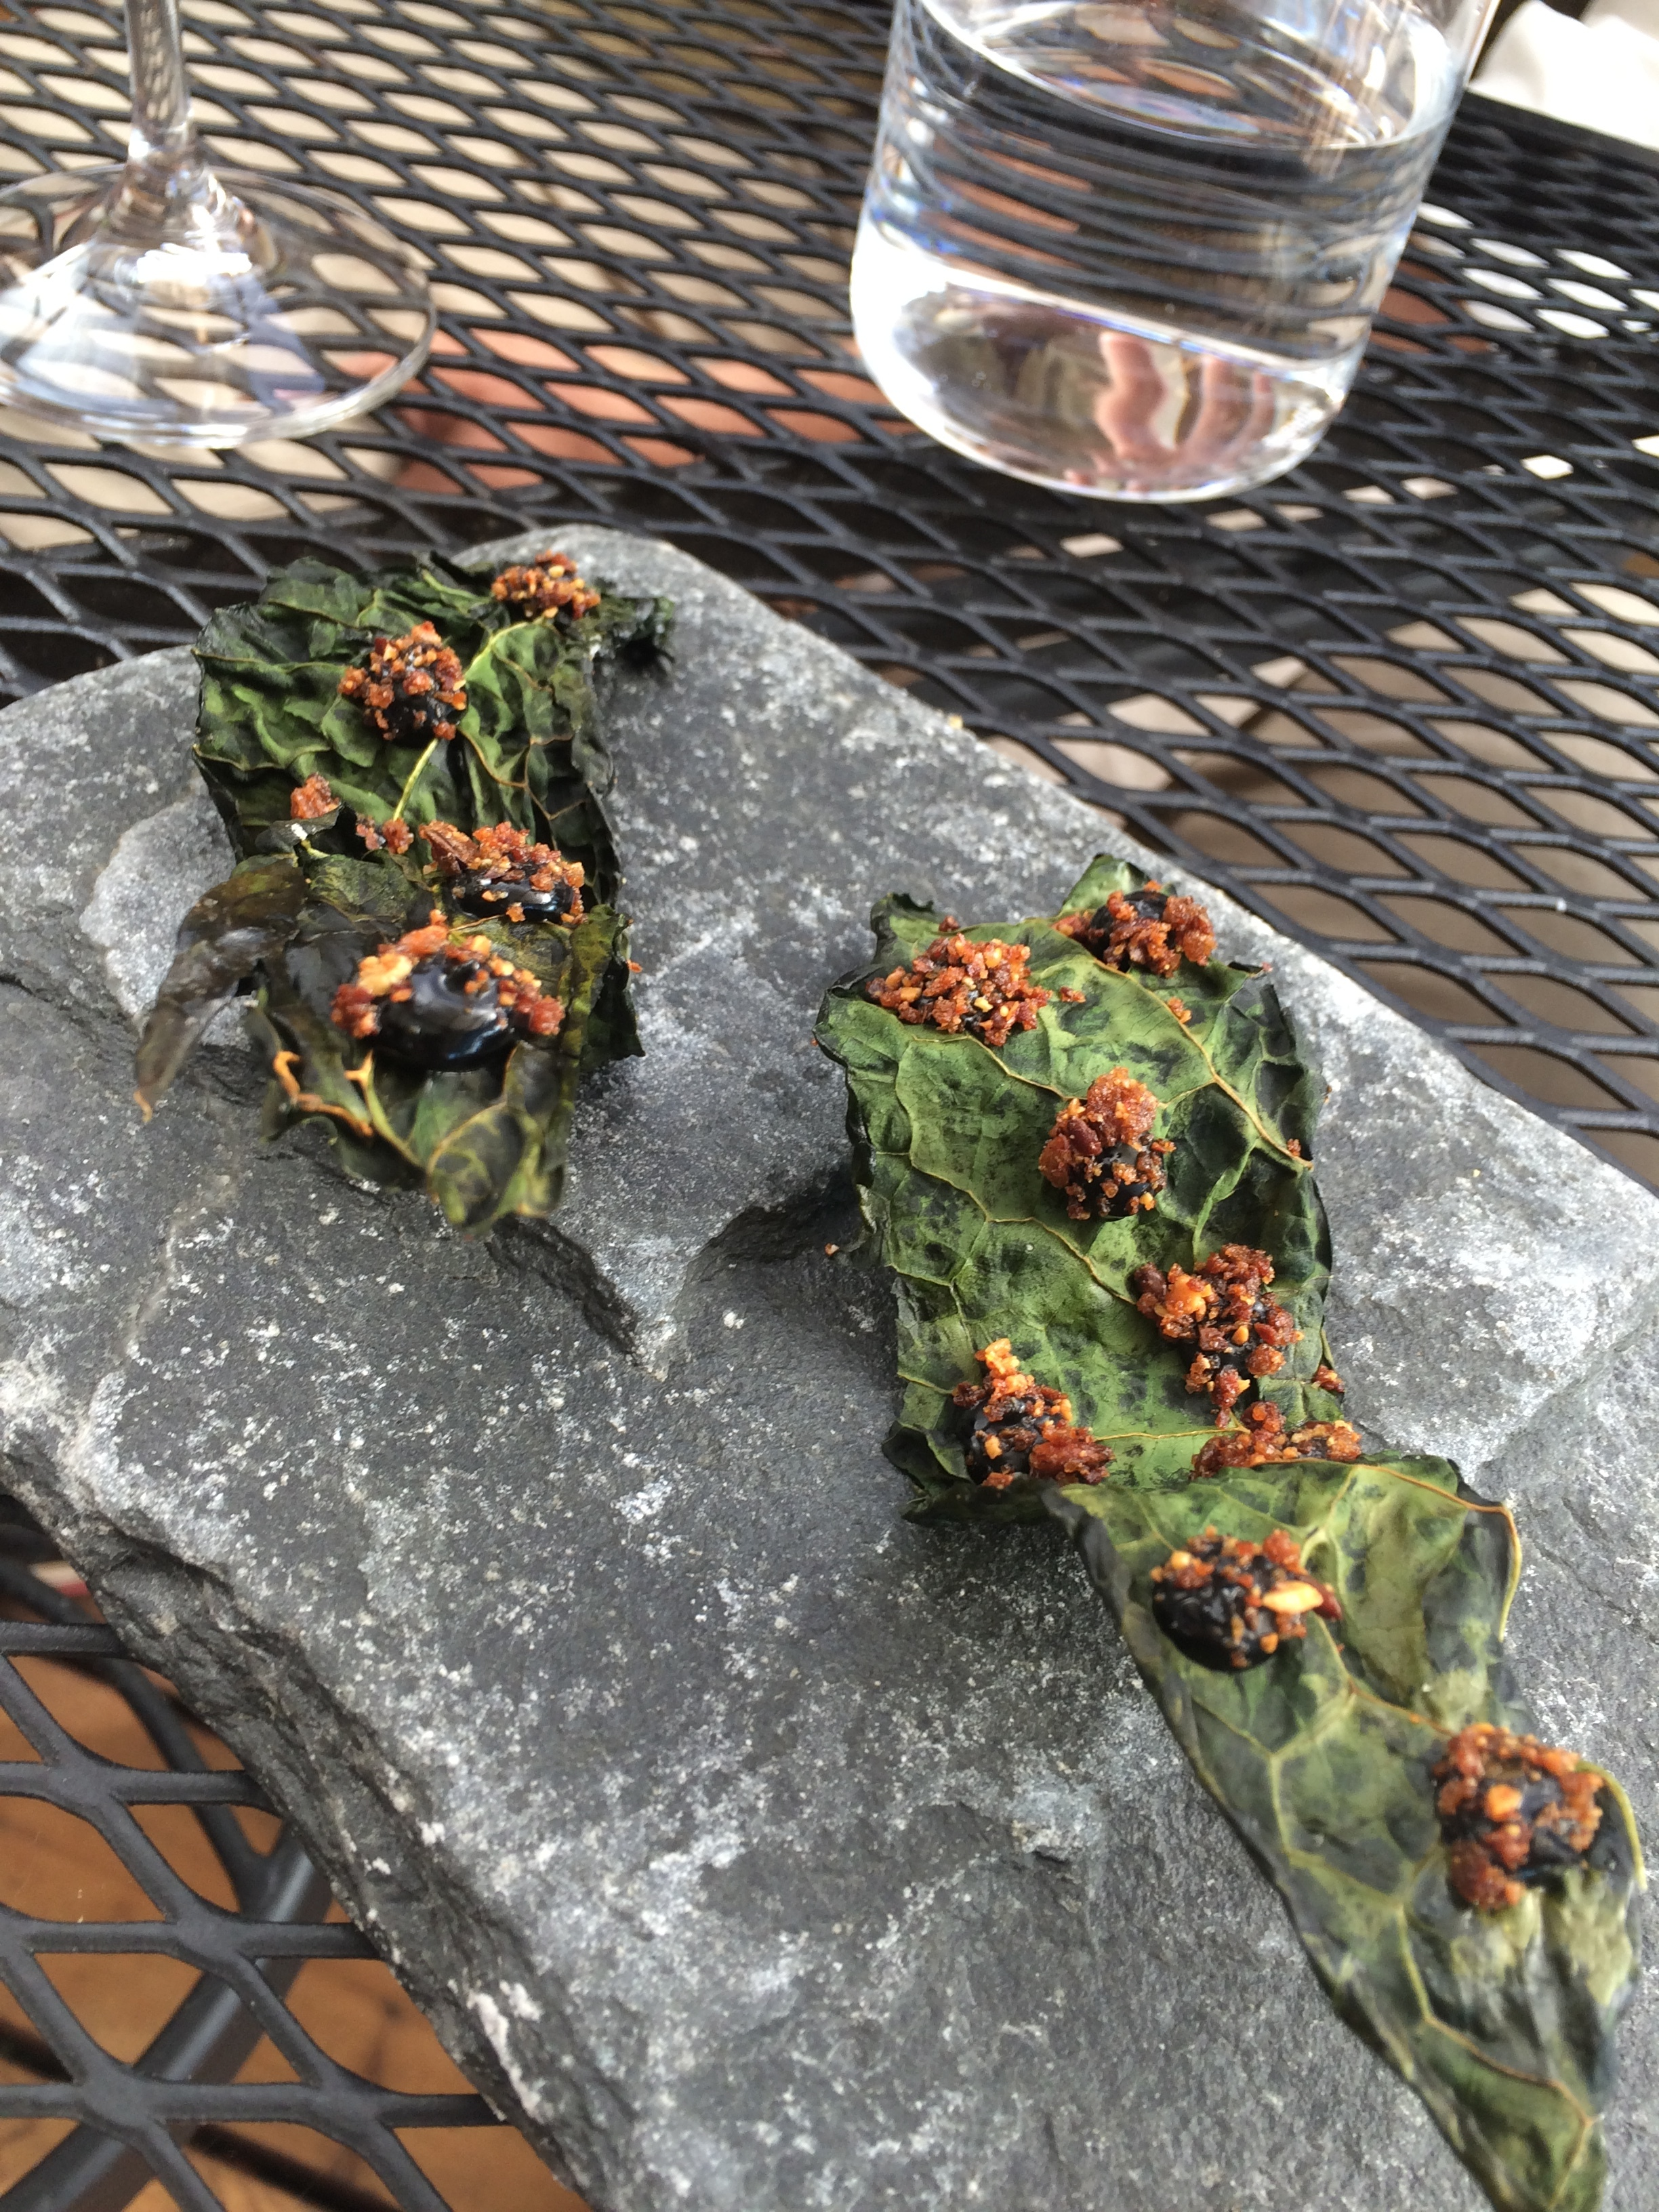 Kale leaves with black truffle